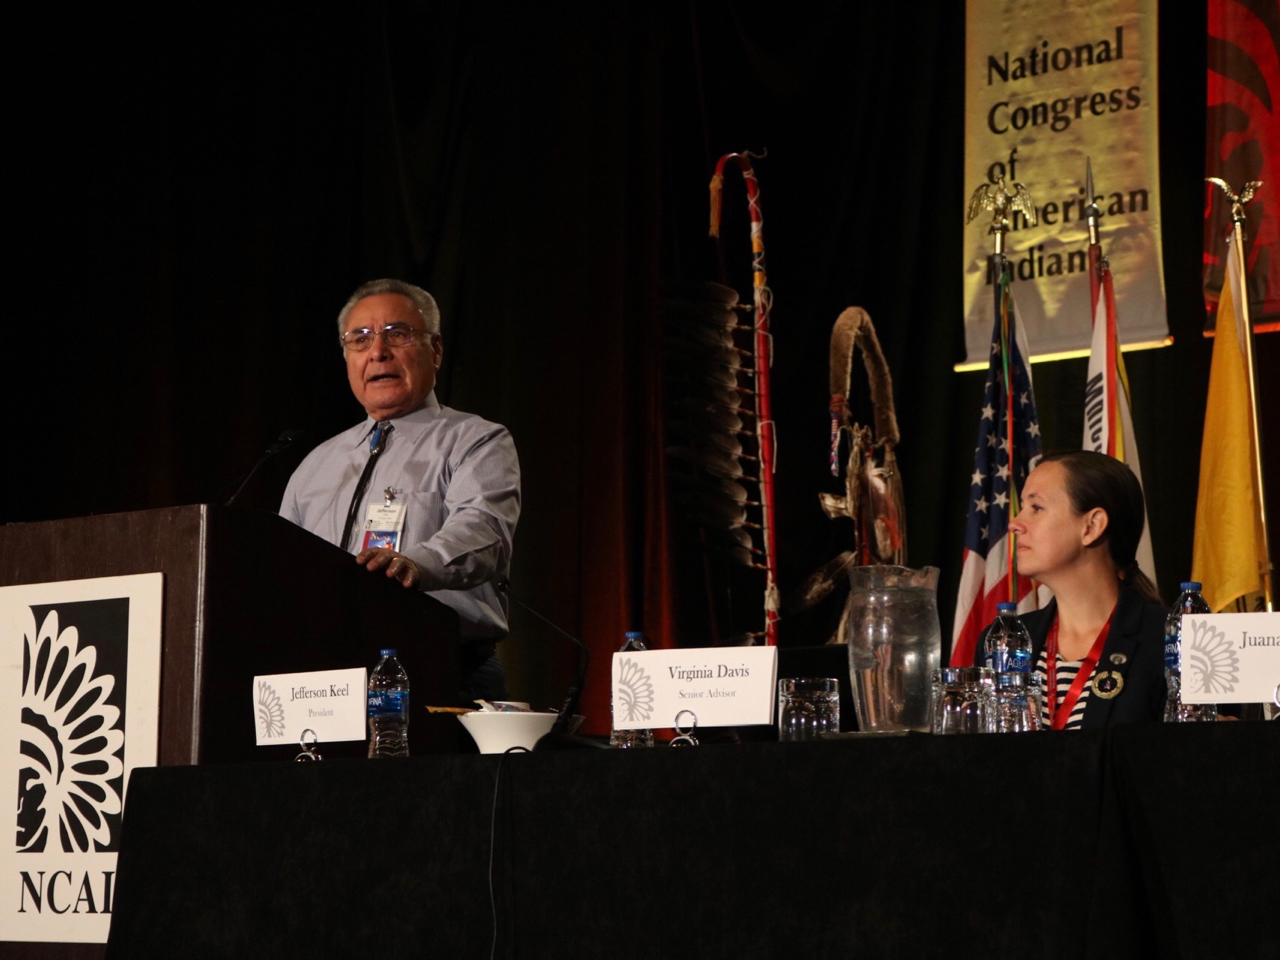 National Congress of American Indians loses more women staffers